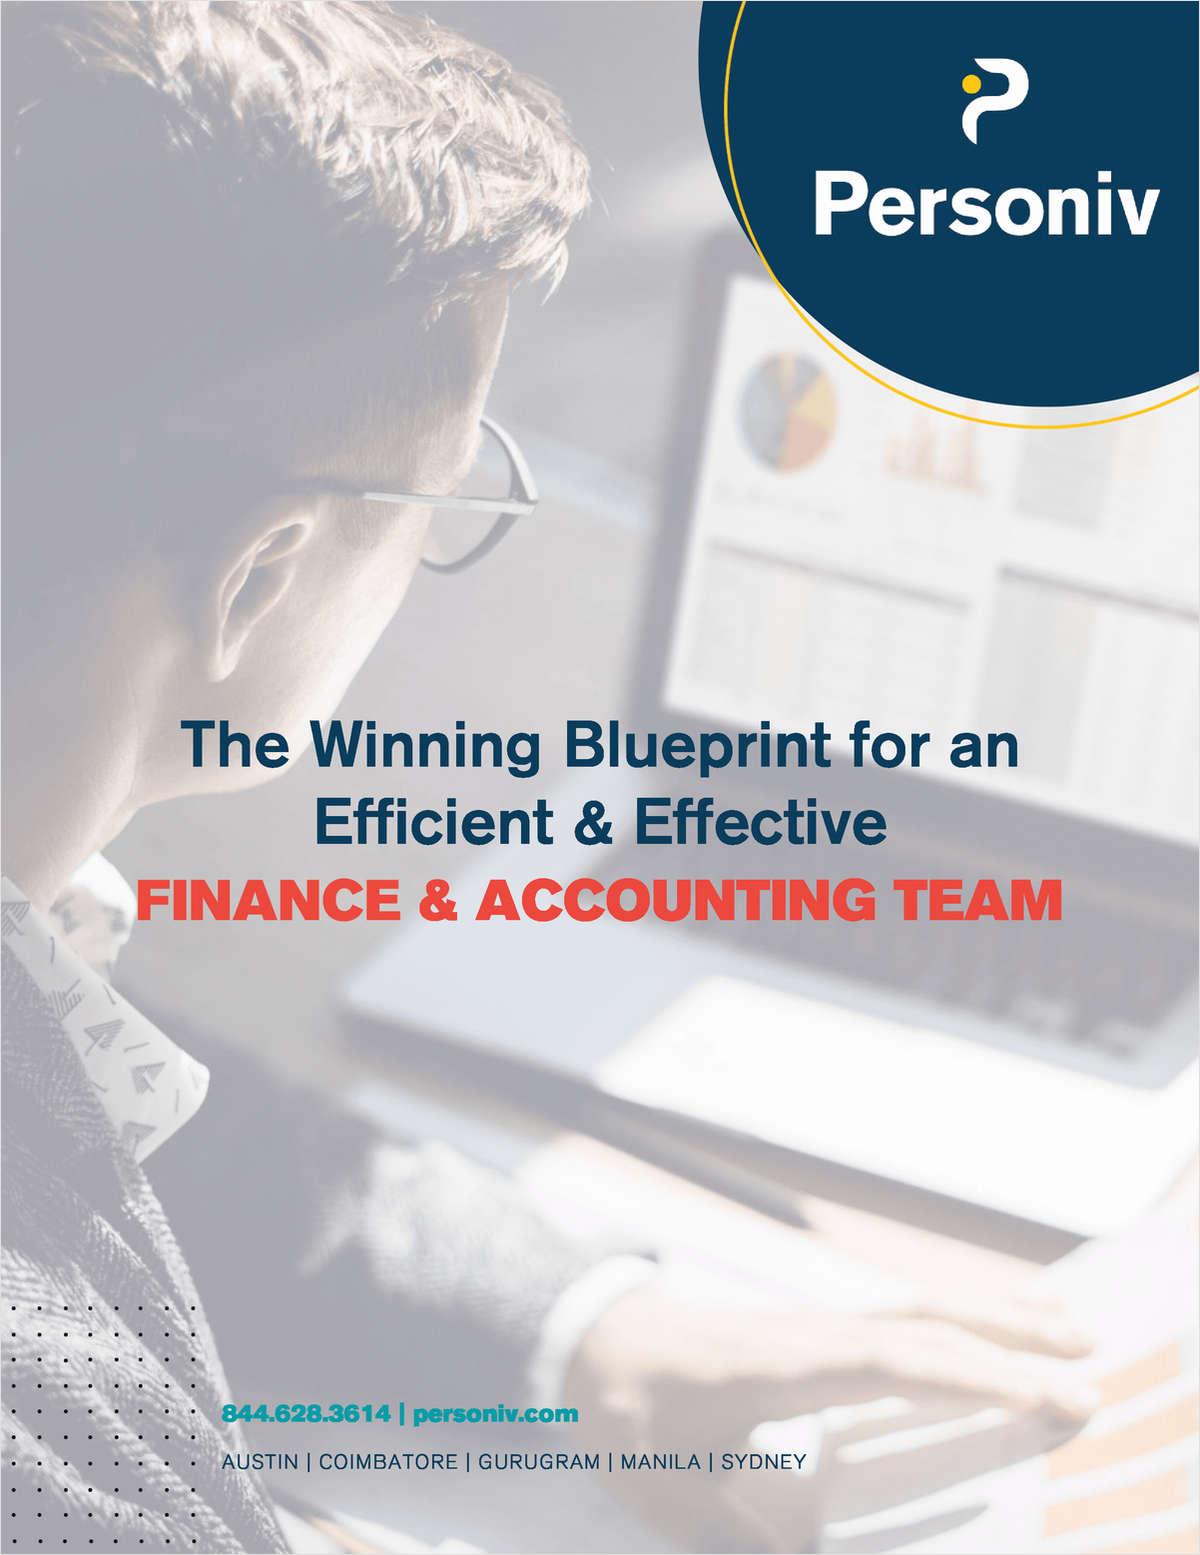 The Winning Blueprint for an Effective & Efficient Finance & Accounting Team